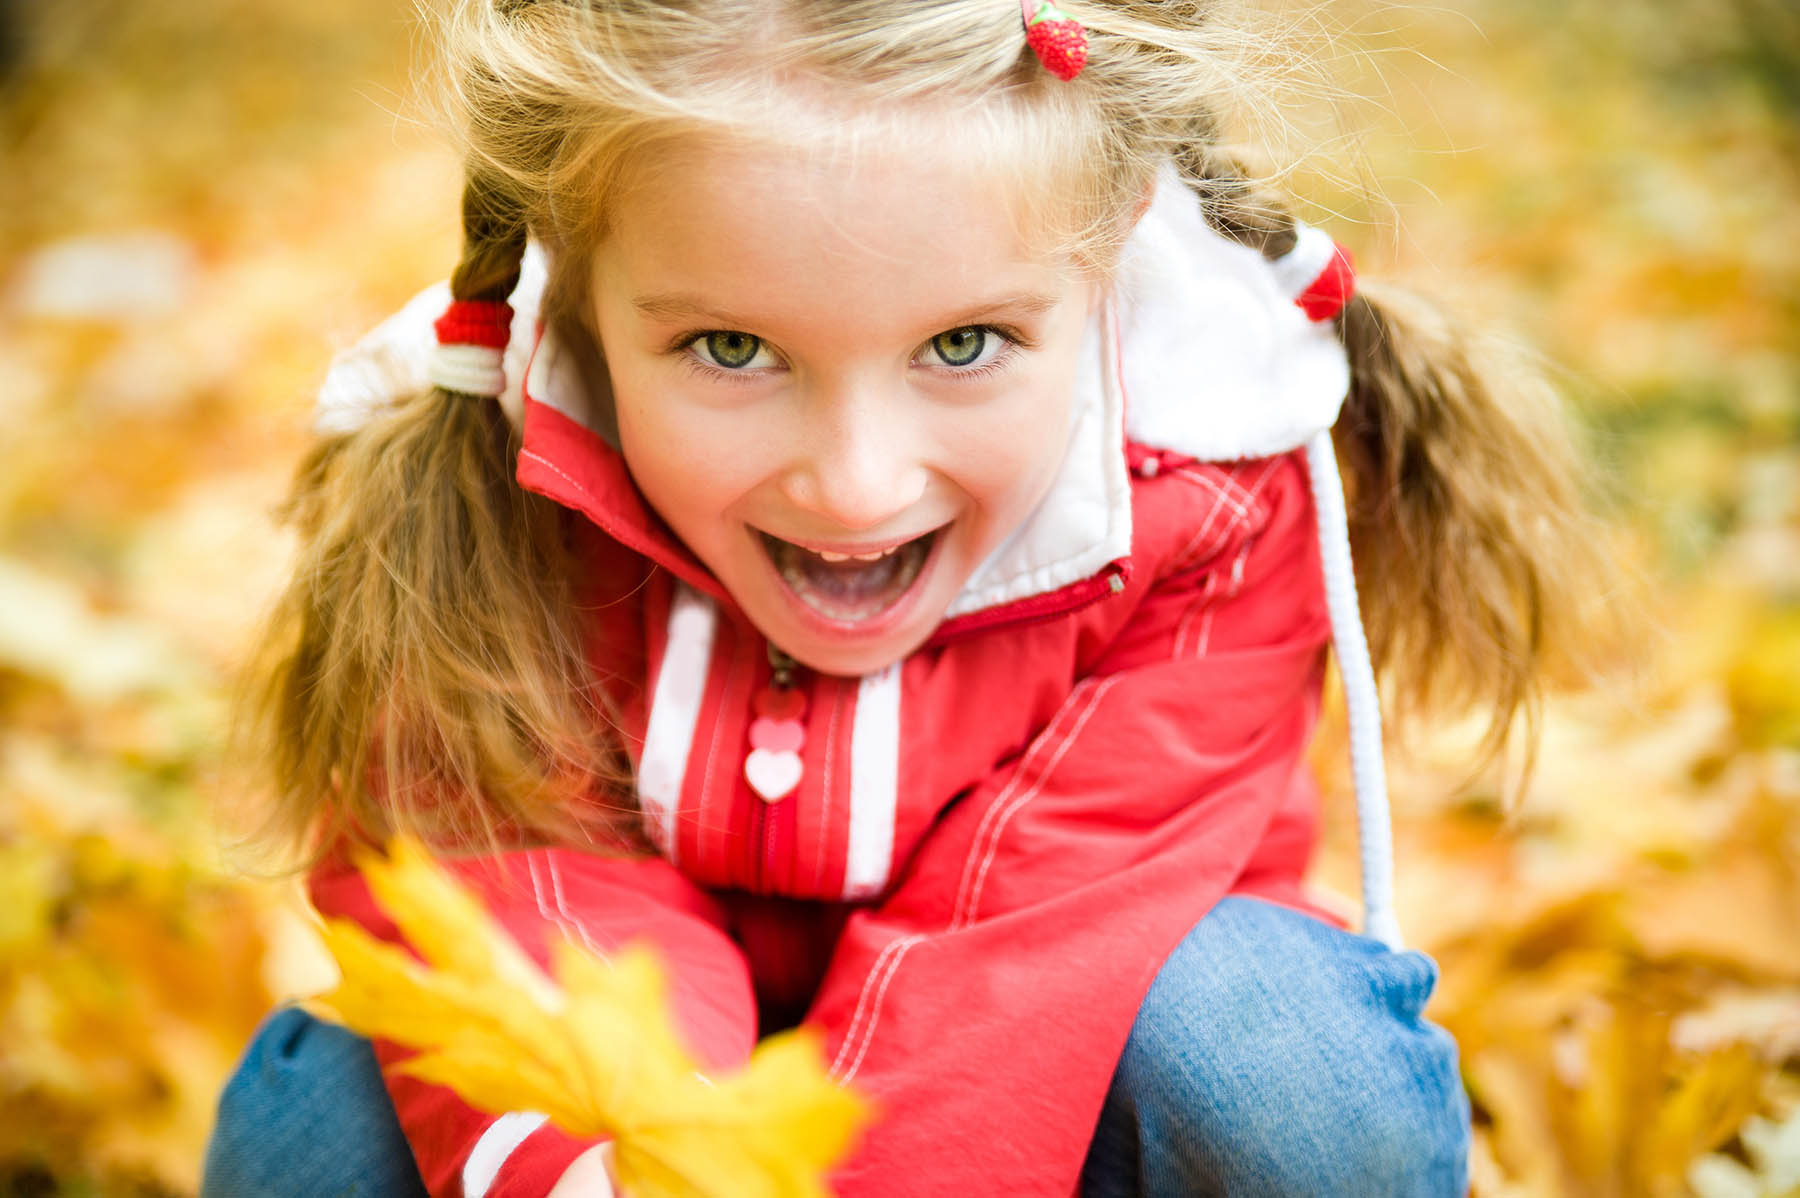 Young girl playing with fall colored leaves